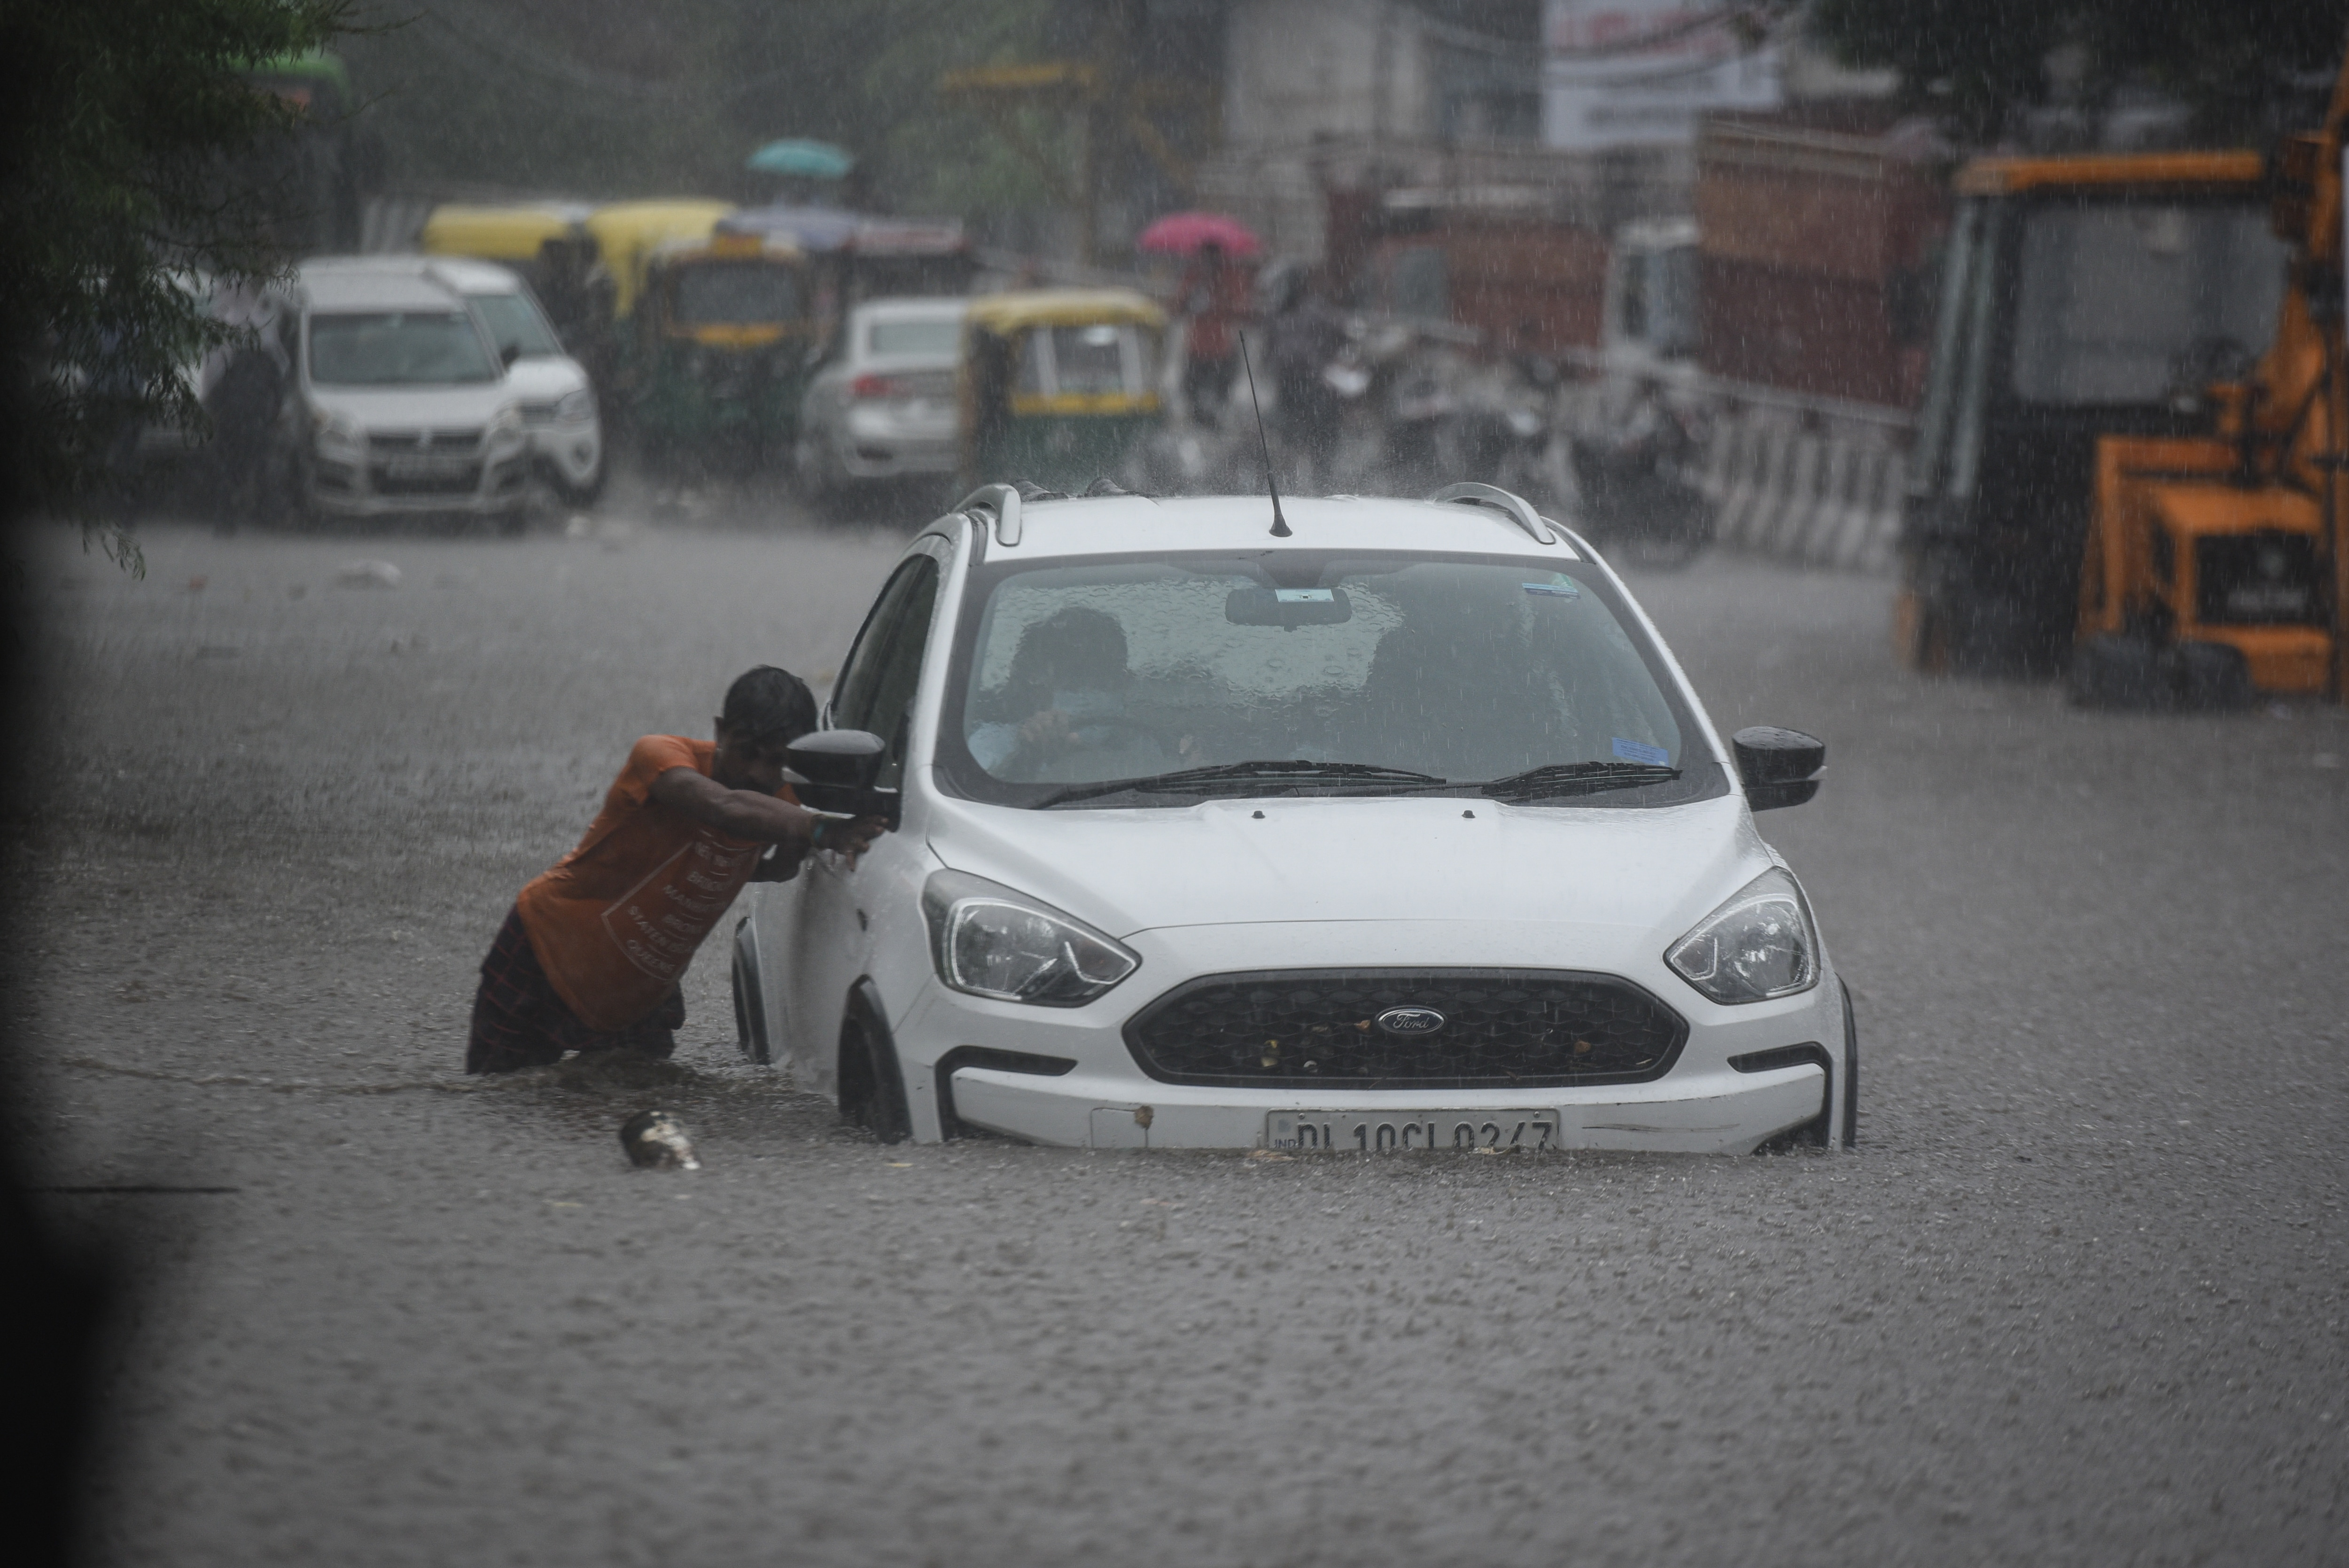 This is just one of numerous scenes that were common on Delhi roads on Tuesday morning and afternoon. (Sanchit Khanna/HT PHOTO)